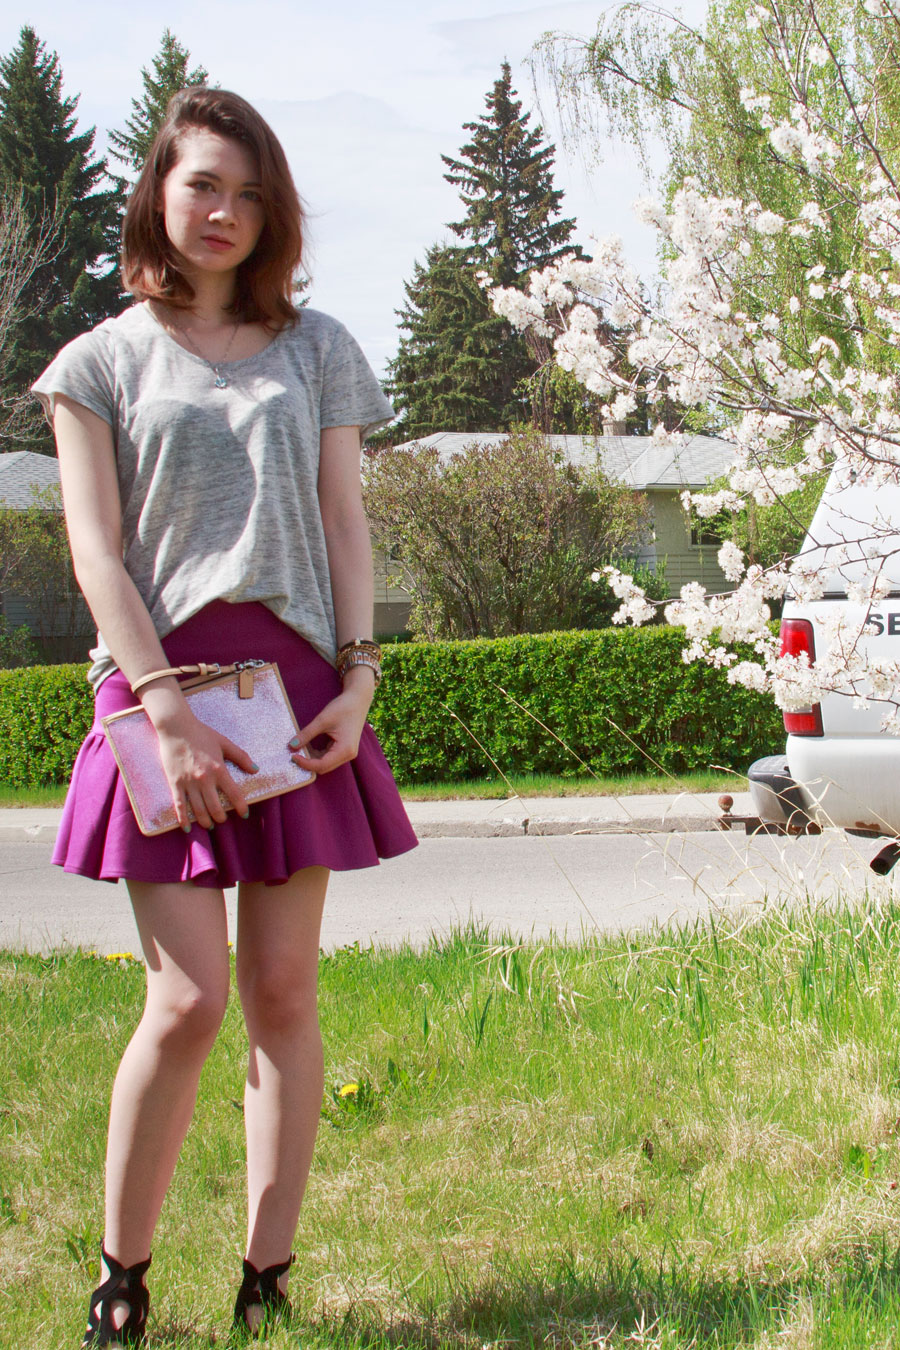 Joie, Asos, scuba skirt, Coach, Michael Kors, Juicy Couture, Swarovski, spring, summer, Zara